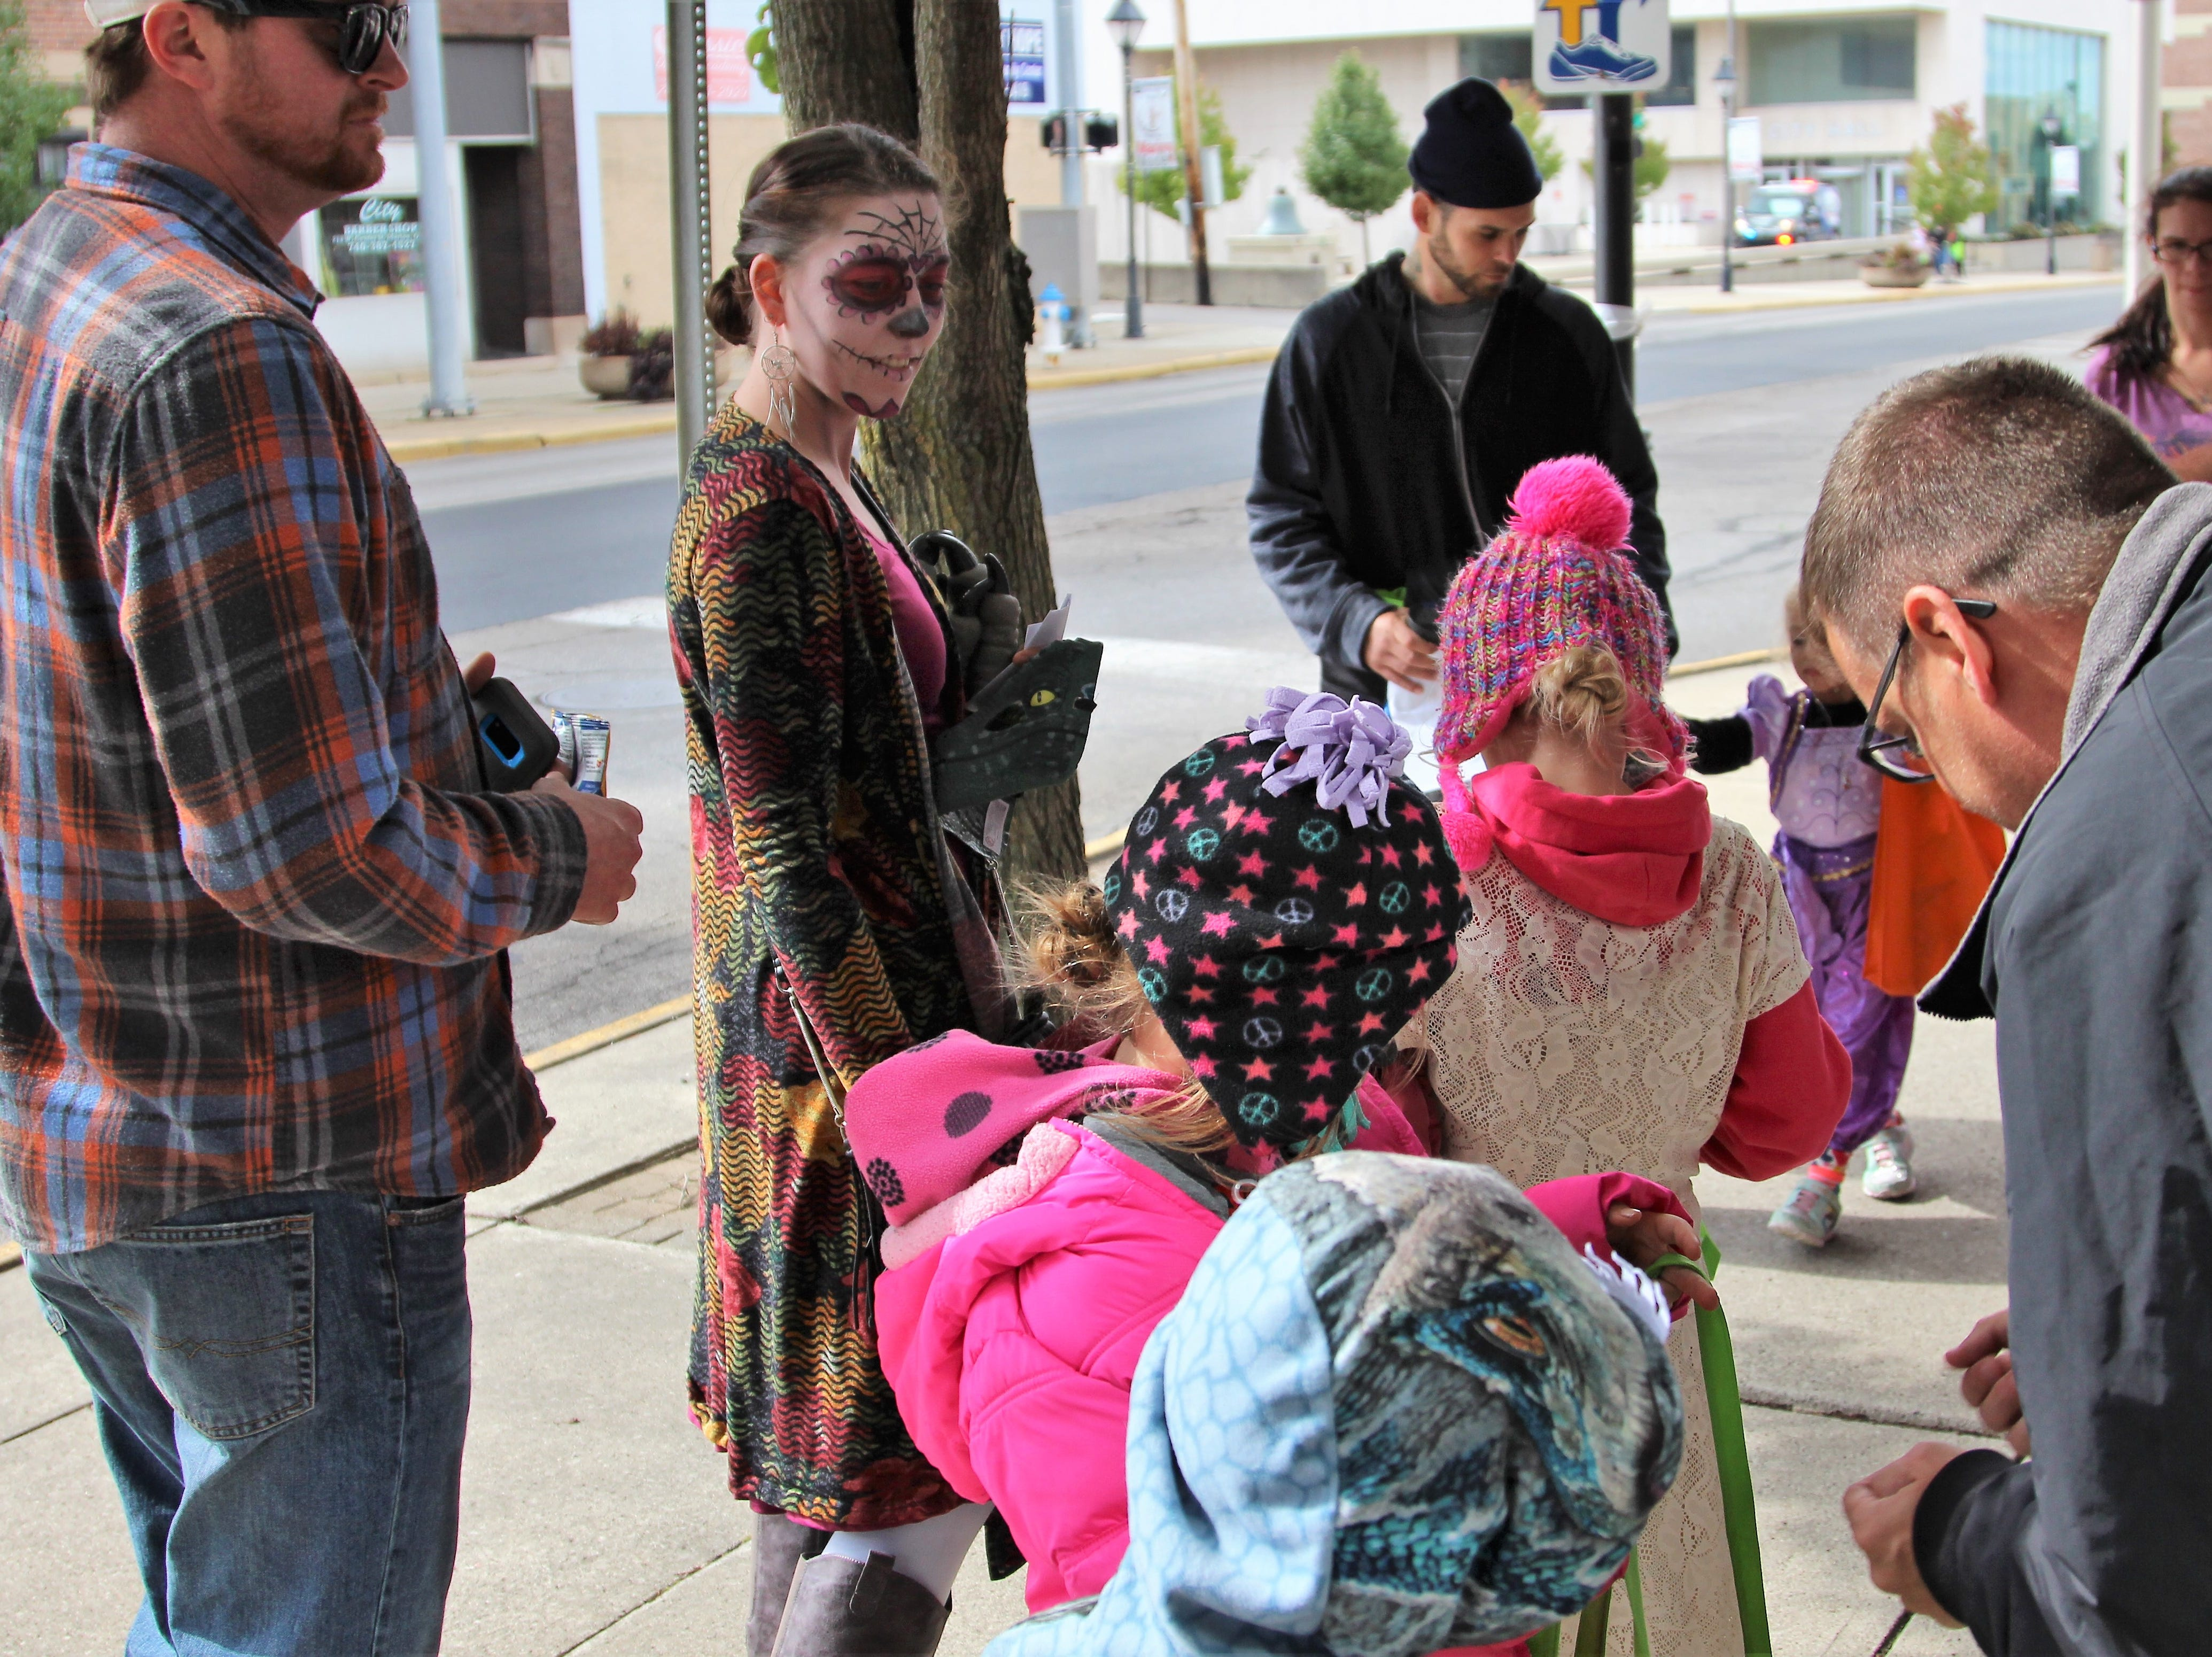 Marion County Prosecutor candidate Jeff Ratliff passes out candy outside his law office on West Center Street. Young residents adorned in Halloween costumes spent the early part of Saturday afternoon collecting candy from downtown businesses, governmental offices and first responders.